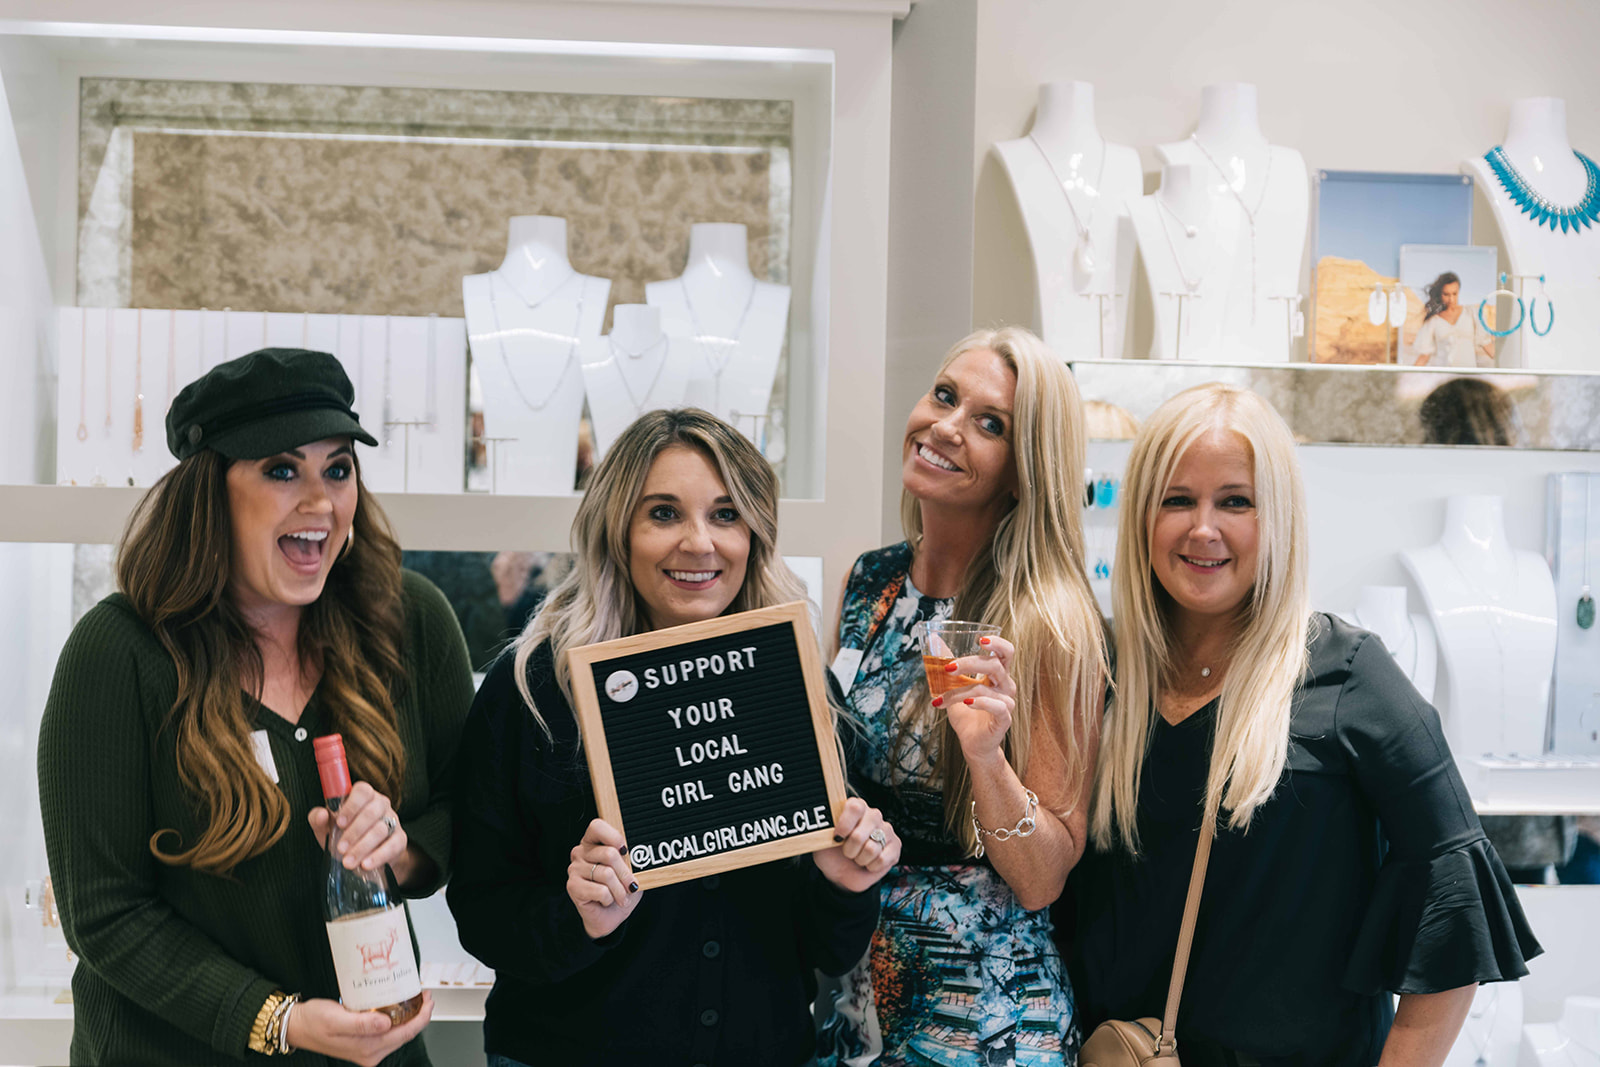 Appetizers & drinks were provided while Girl Gang members networked and shopped with one another.  Photo by Anita Louse Photography.